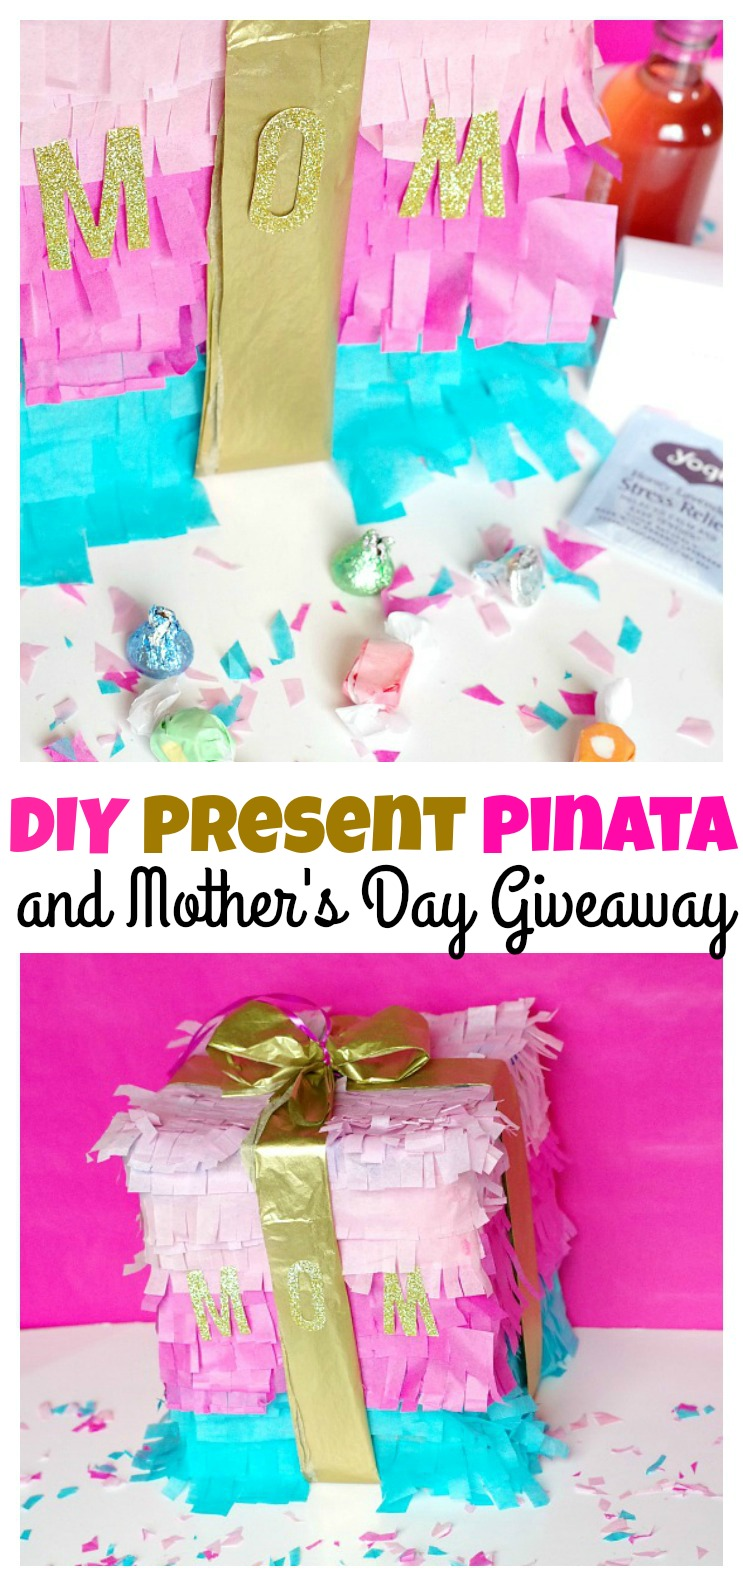 DIY Present Pinata and Mother's Day Giveaway! - Val Event Gal